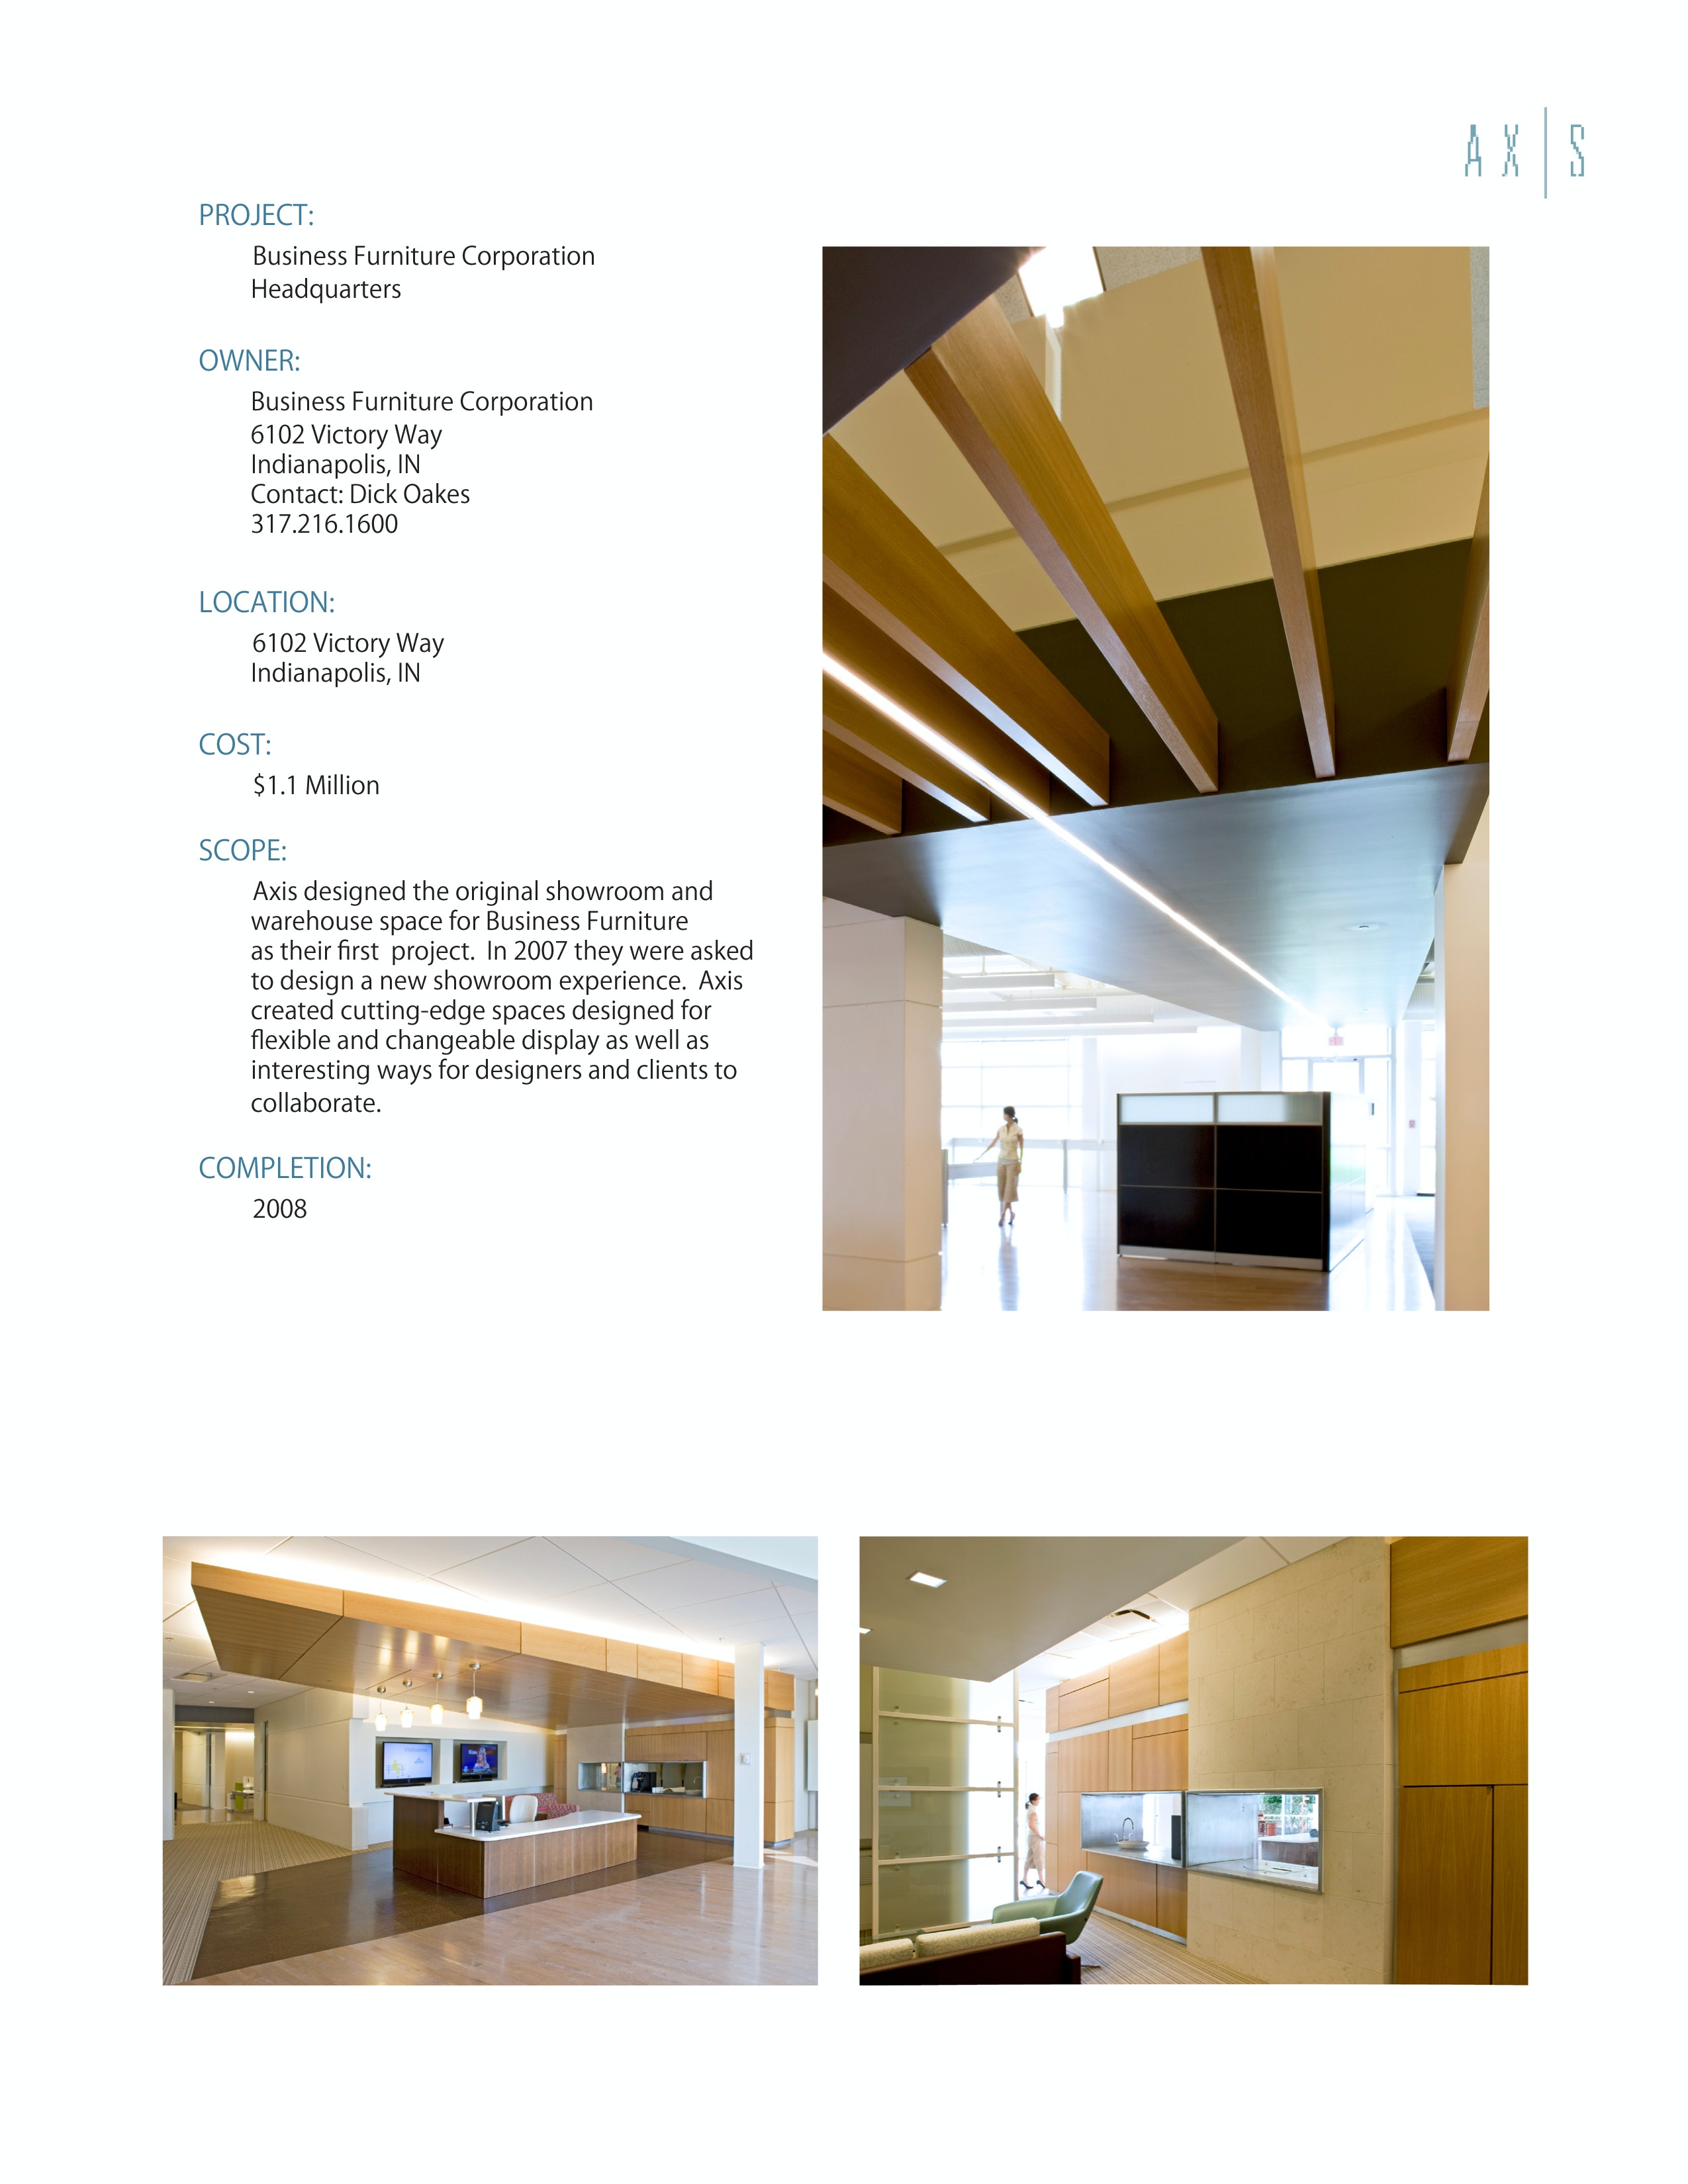 Business Furniture Corporation Headquarters | Axis Architecture + Interiors  | Archinect